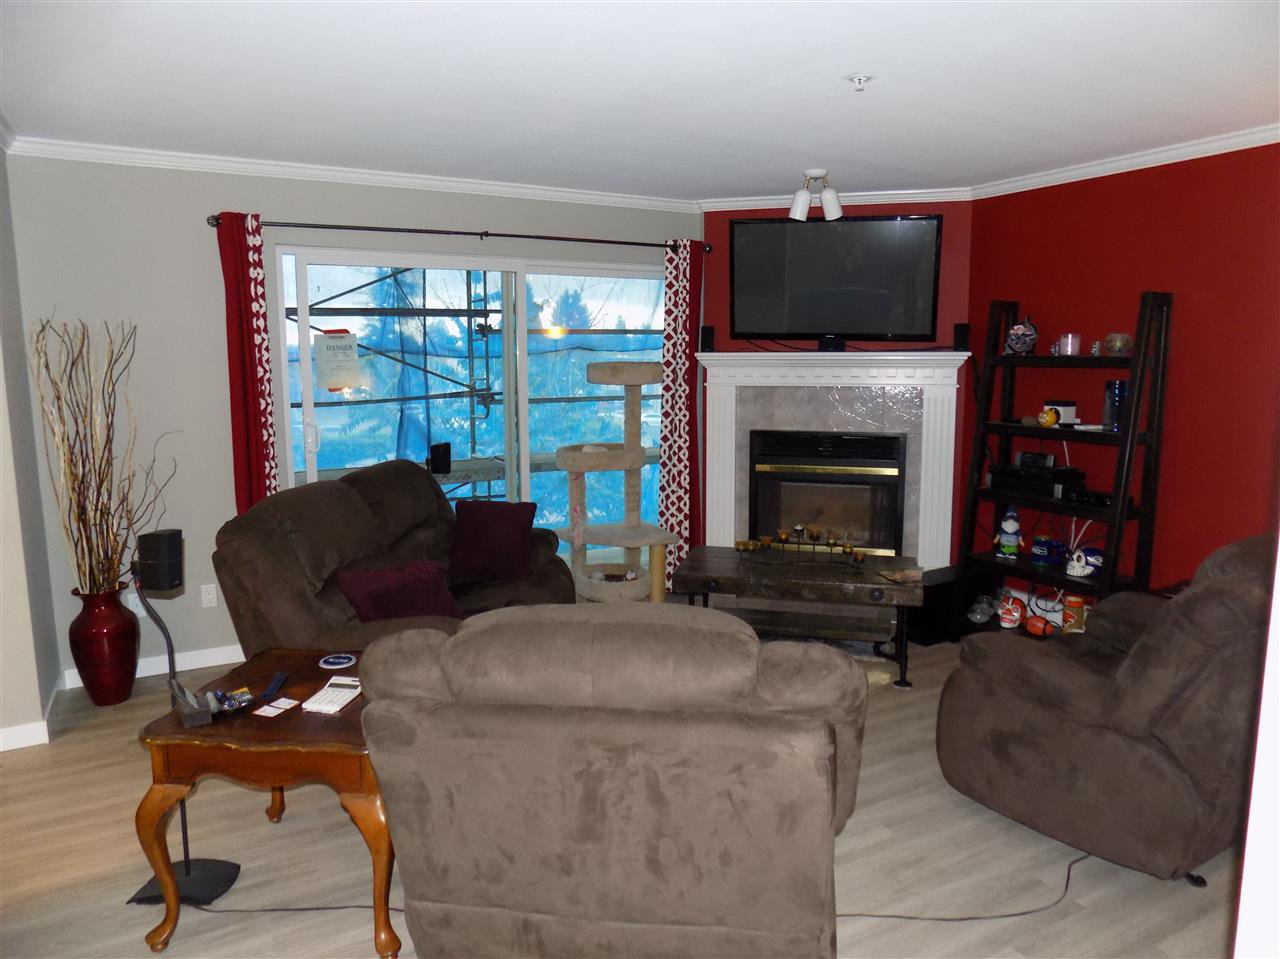 Photo 6: Photos: 311 32044 OLD YALE Road in Abbotsford: Abbotsford West Condo for sale : MLS®# R2331409